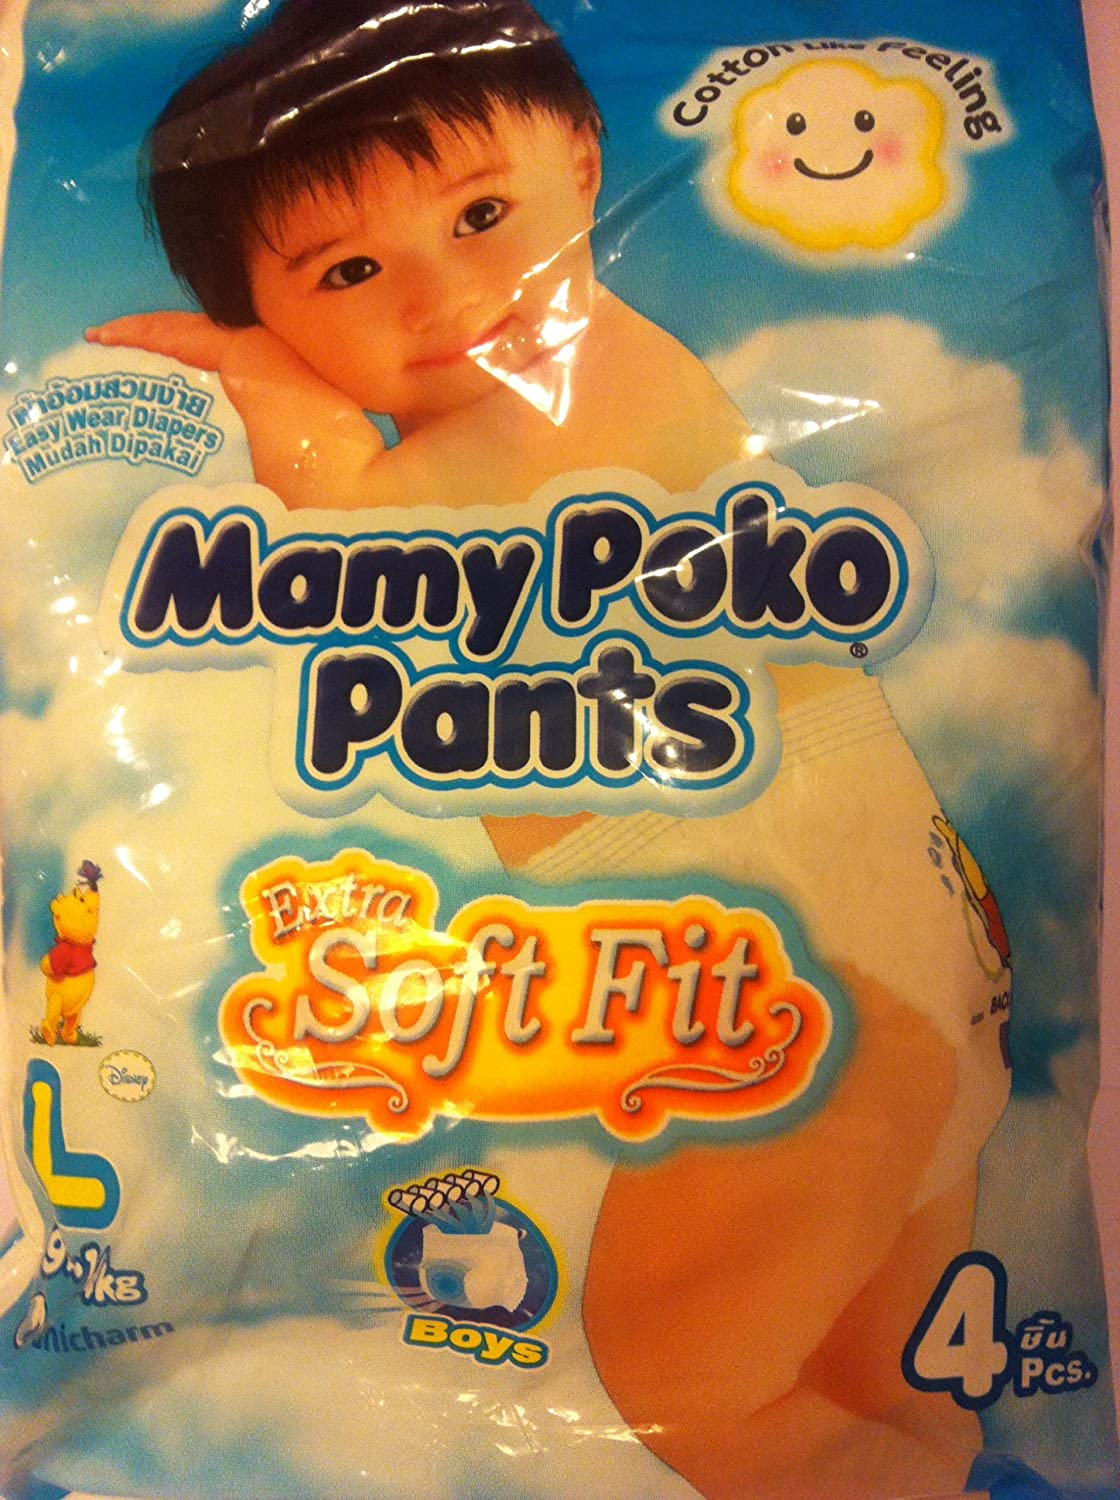 Mamy Poko Pants Extra Soft Fit Boys 4 Pcs Size L 9 14 Kg Mamypoko Xl 24 By Health Personal Care